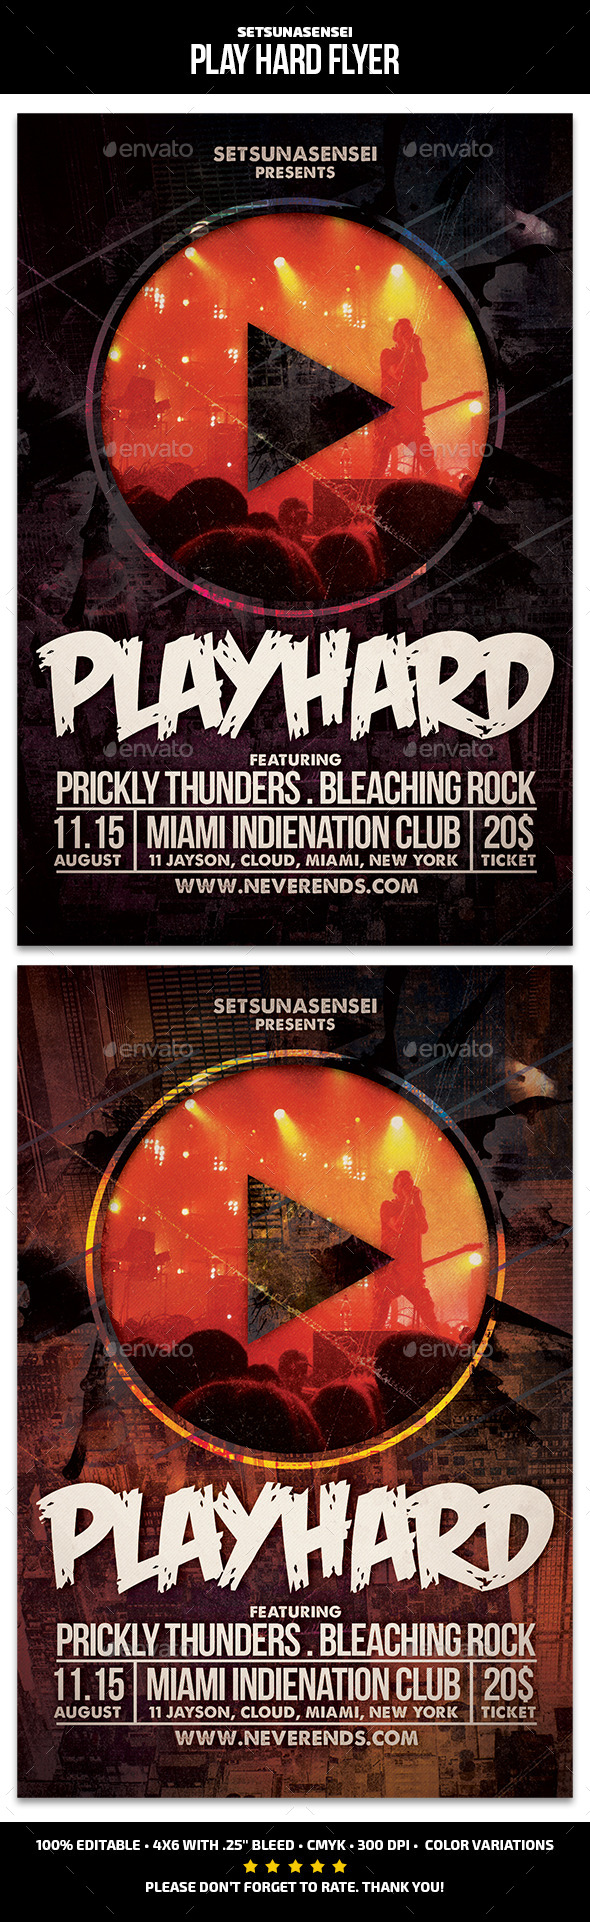 GraphicRiver Play Hard Flyer 11765668